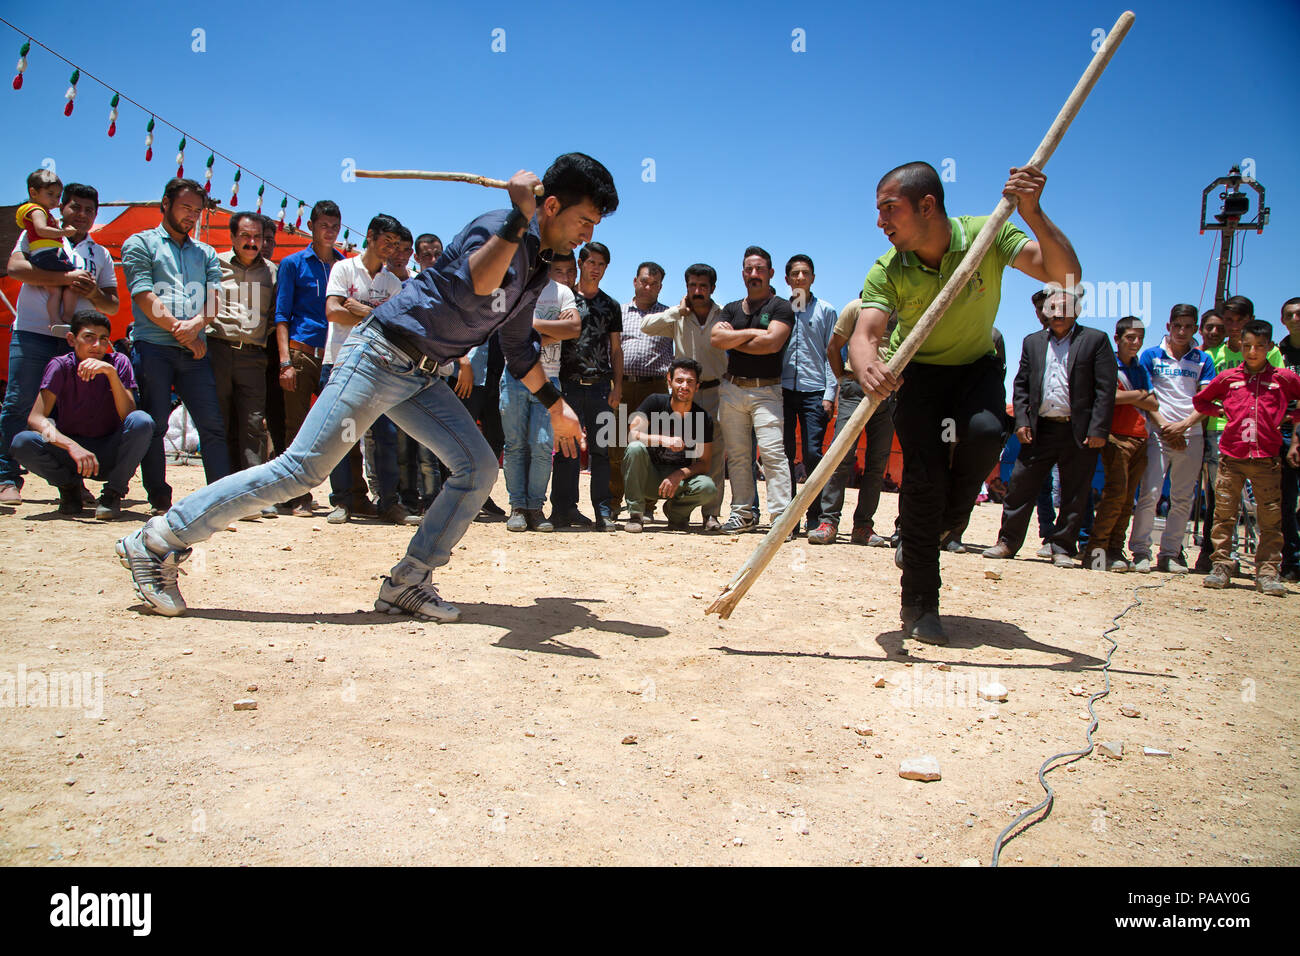 Young Qashqai men fighting with sticks during a traditional stick fight and wedding ceremony,  nomad people, Iran - Stock Image